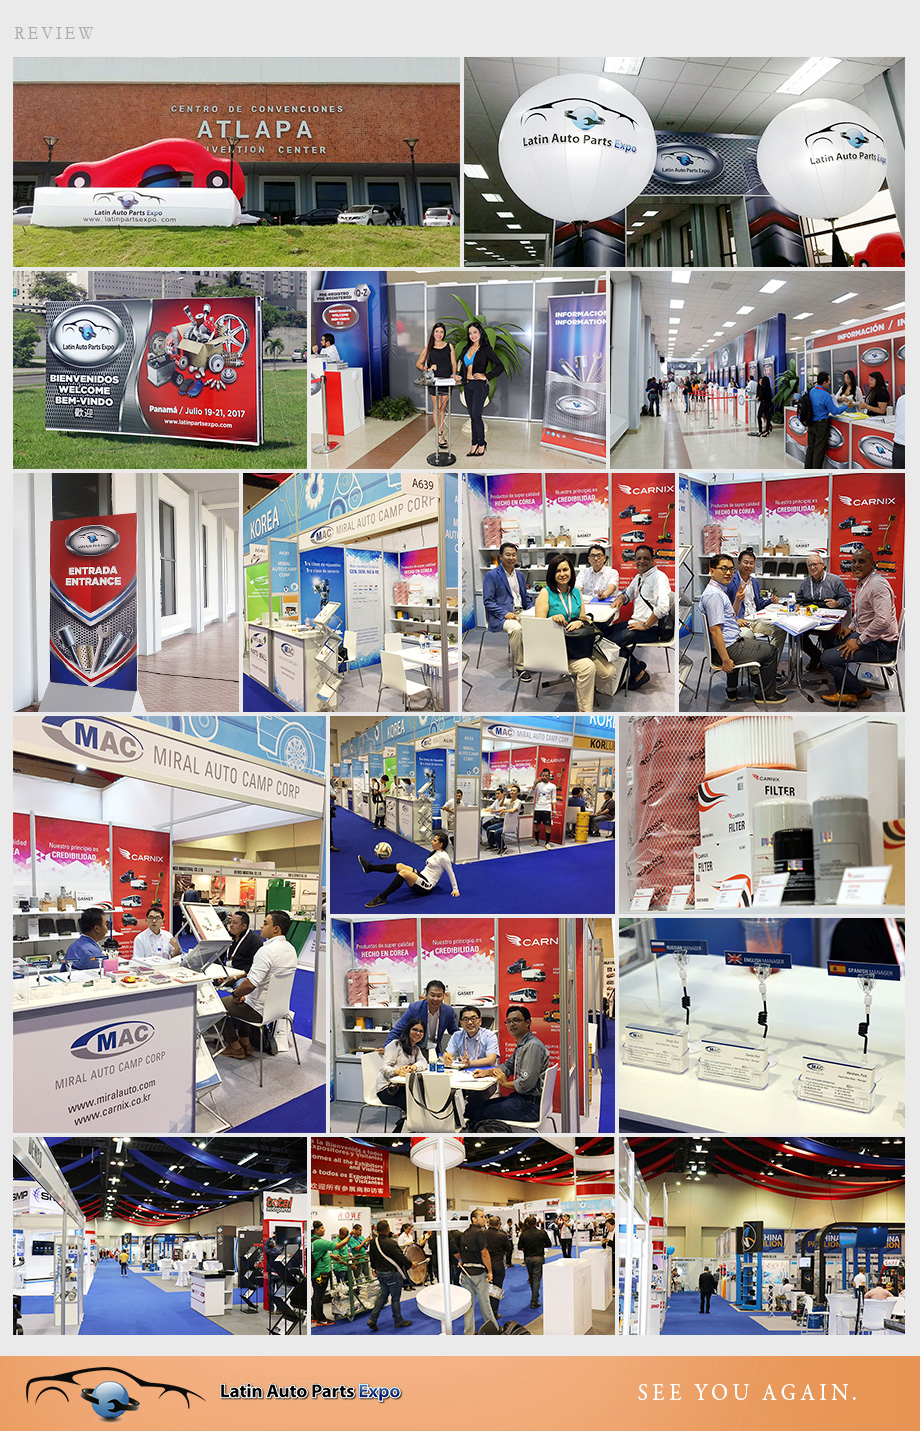 Review of Latin Auto Parts Expo 2017 - Miral Auto Camp Corp